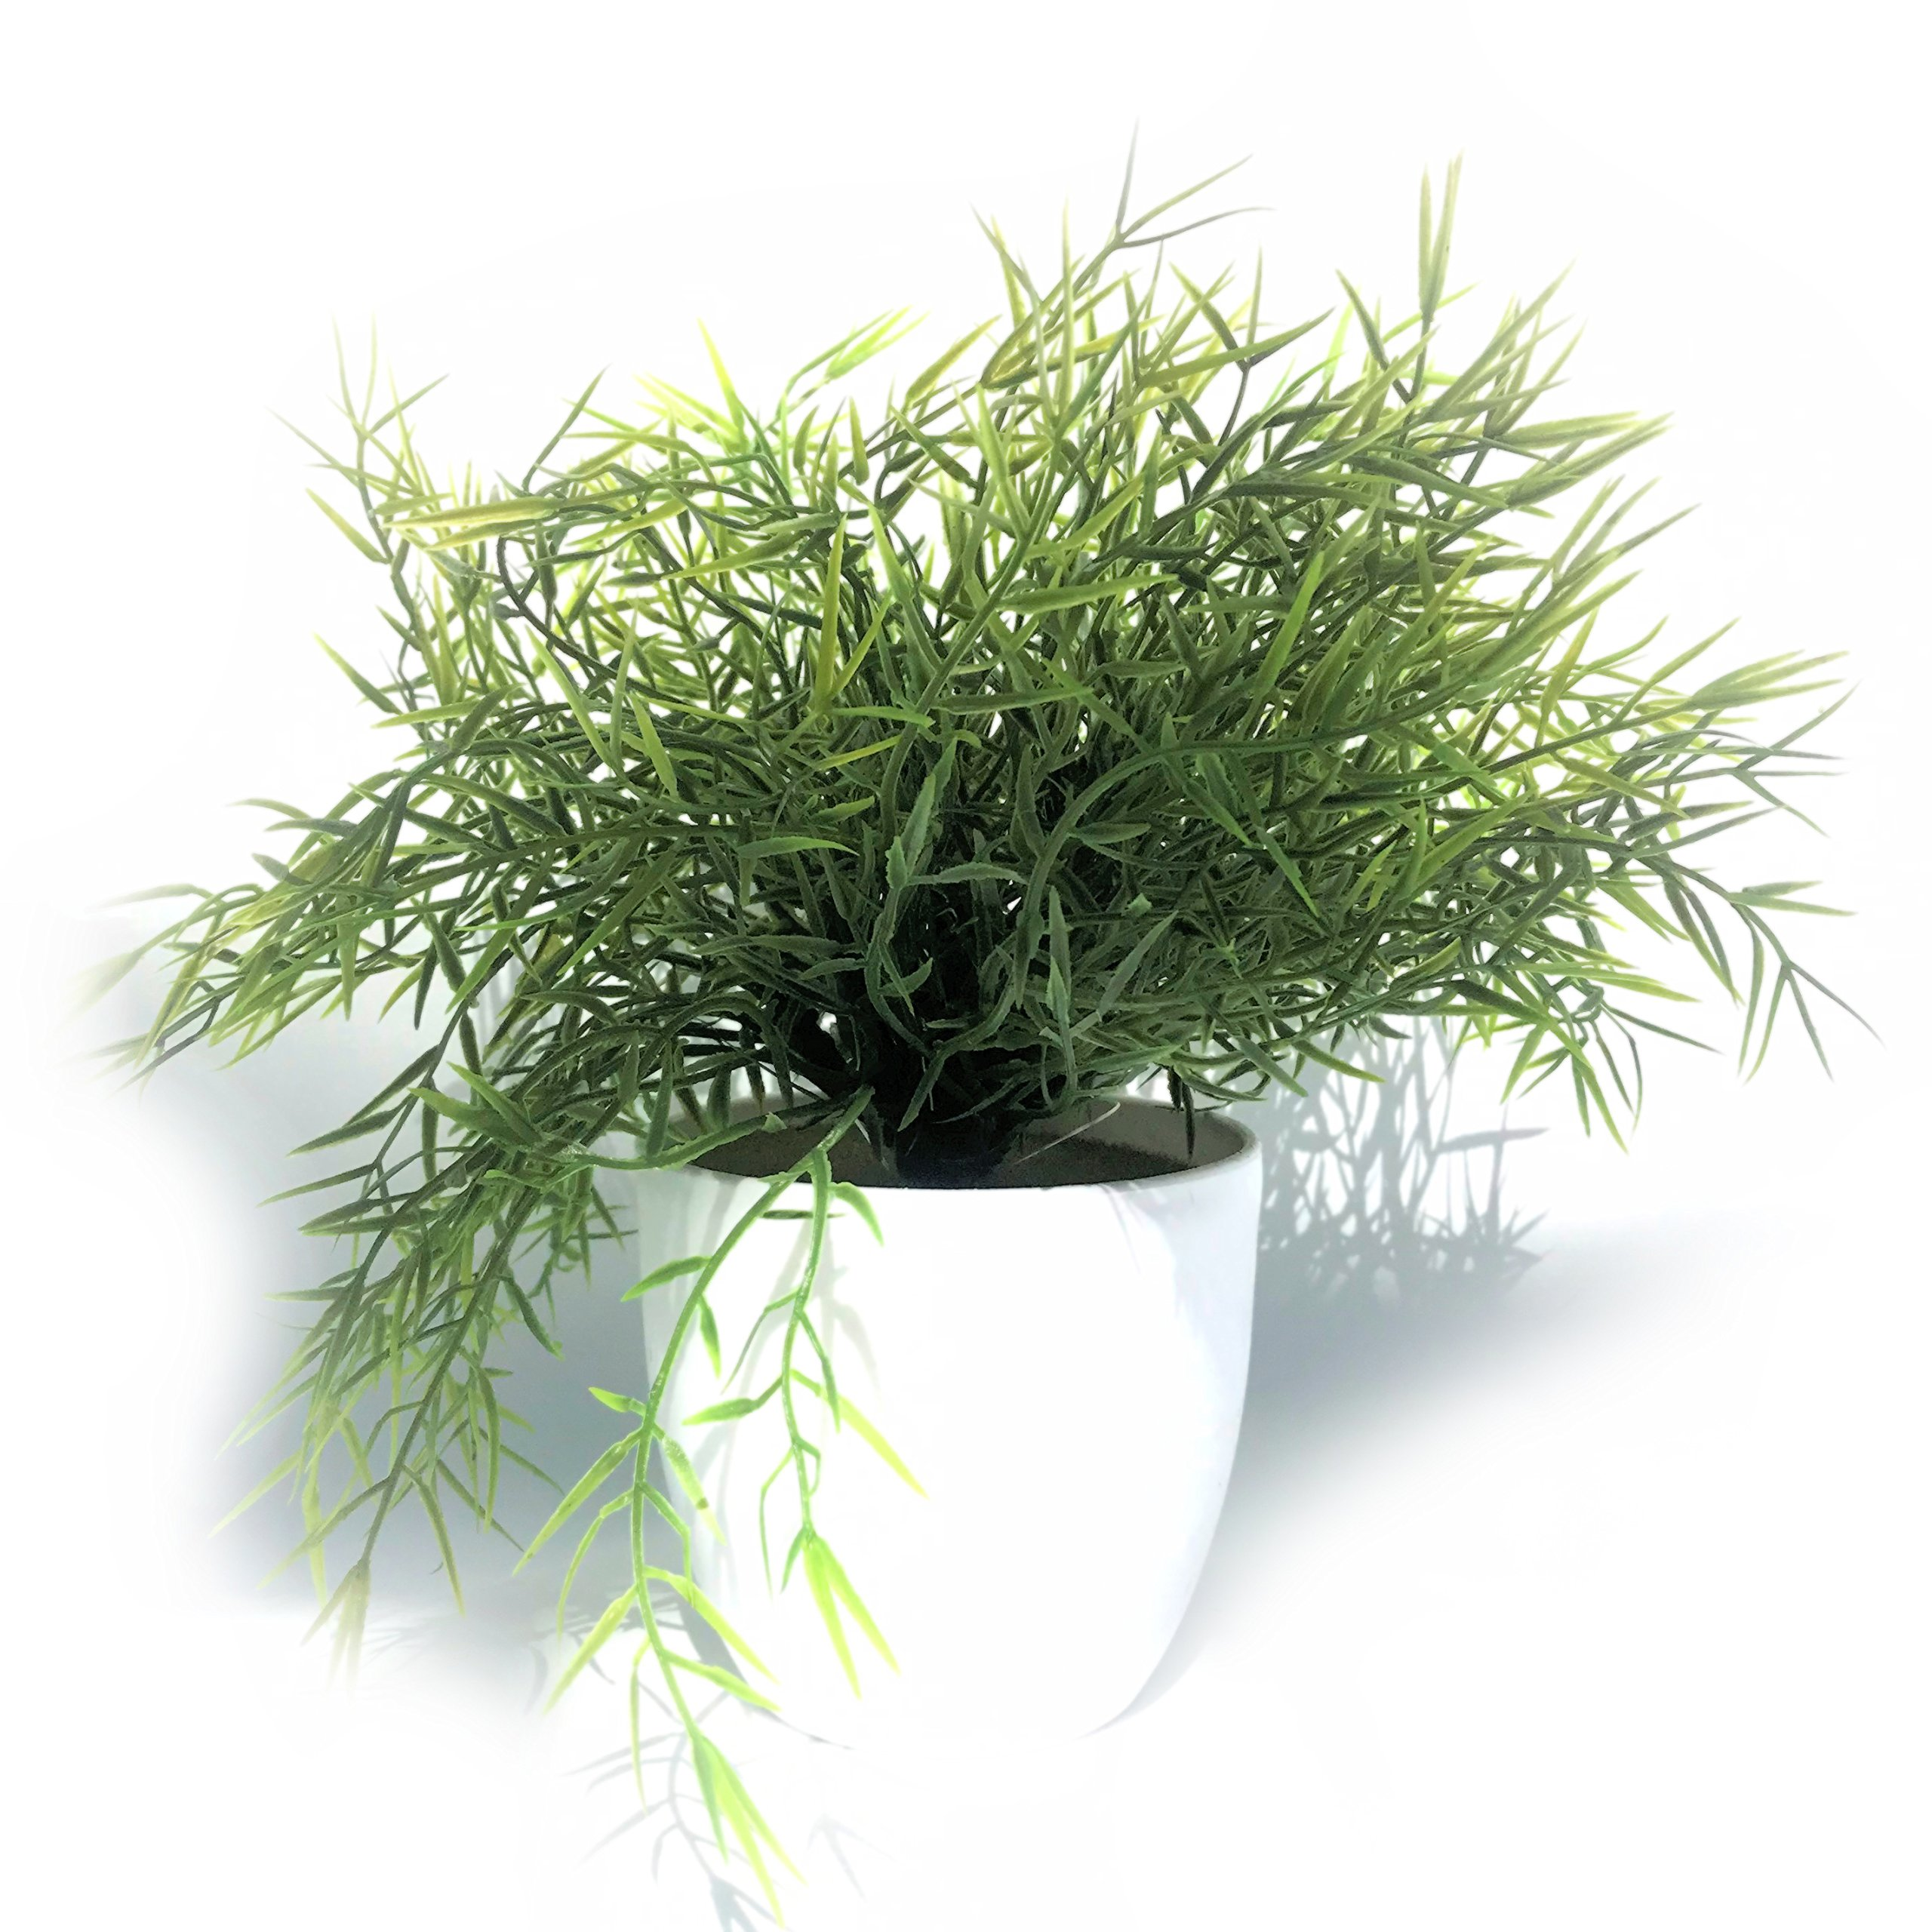 Whole House Worlds The Realistic Faux Baby Lemon Grass, Potted Plant, Houseplant, Kitchen, Lushly Leafed, White Pot, 6 Inches Diameter x 9 ¾ Tall, By by Whole House Worlds